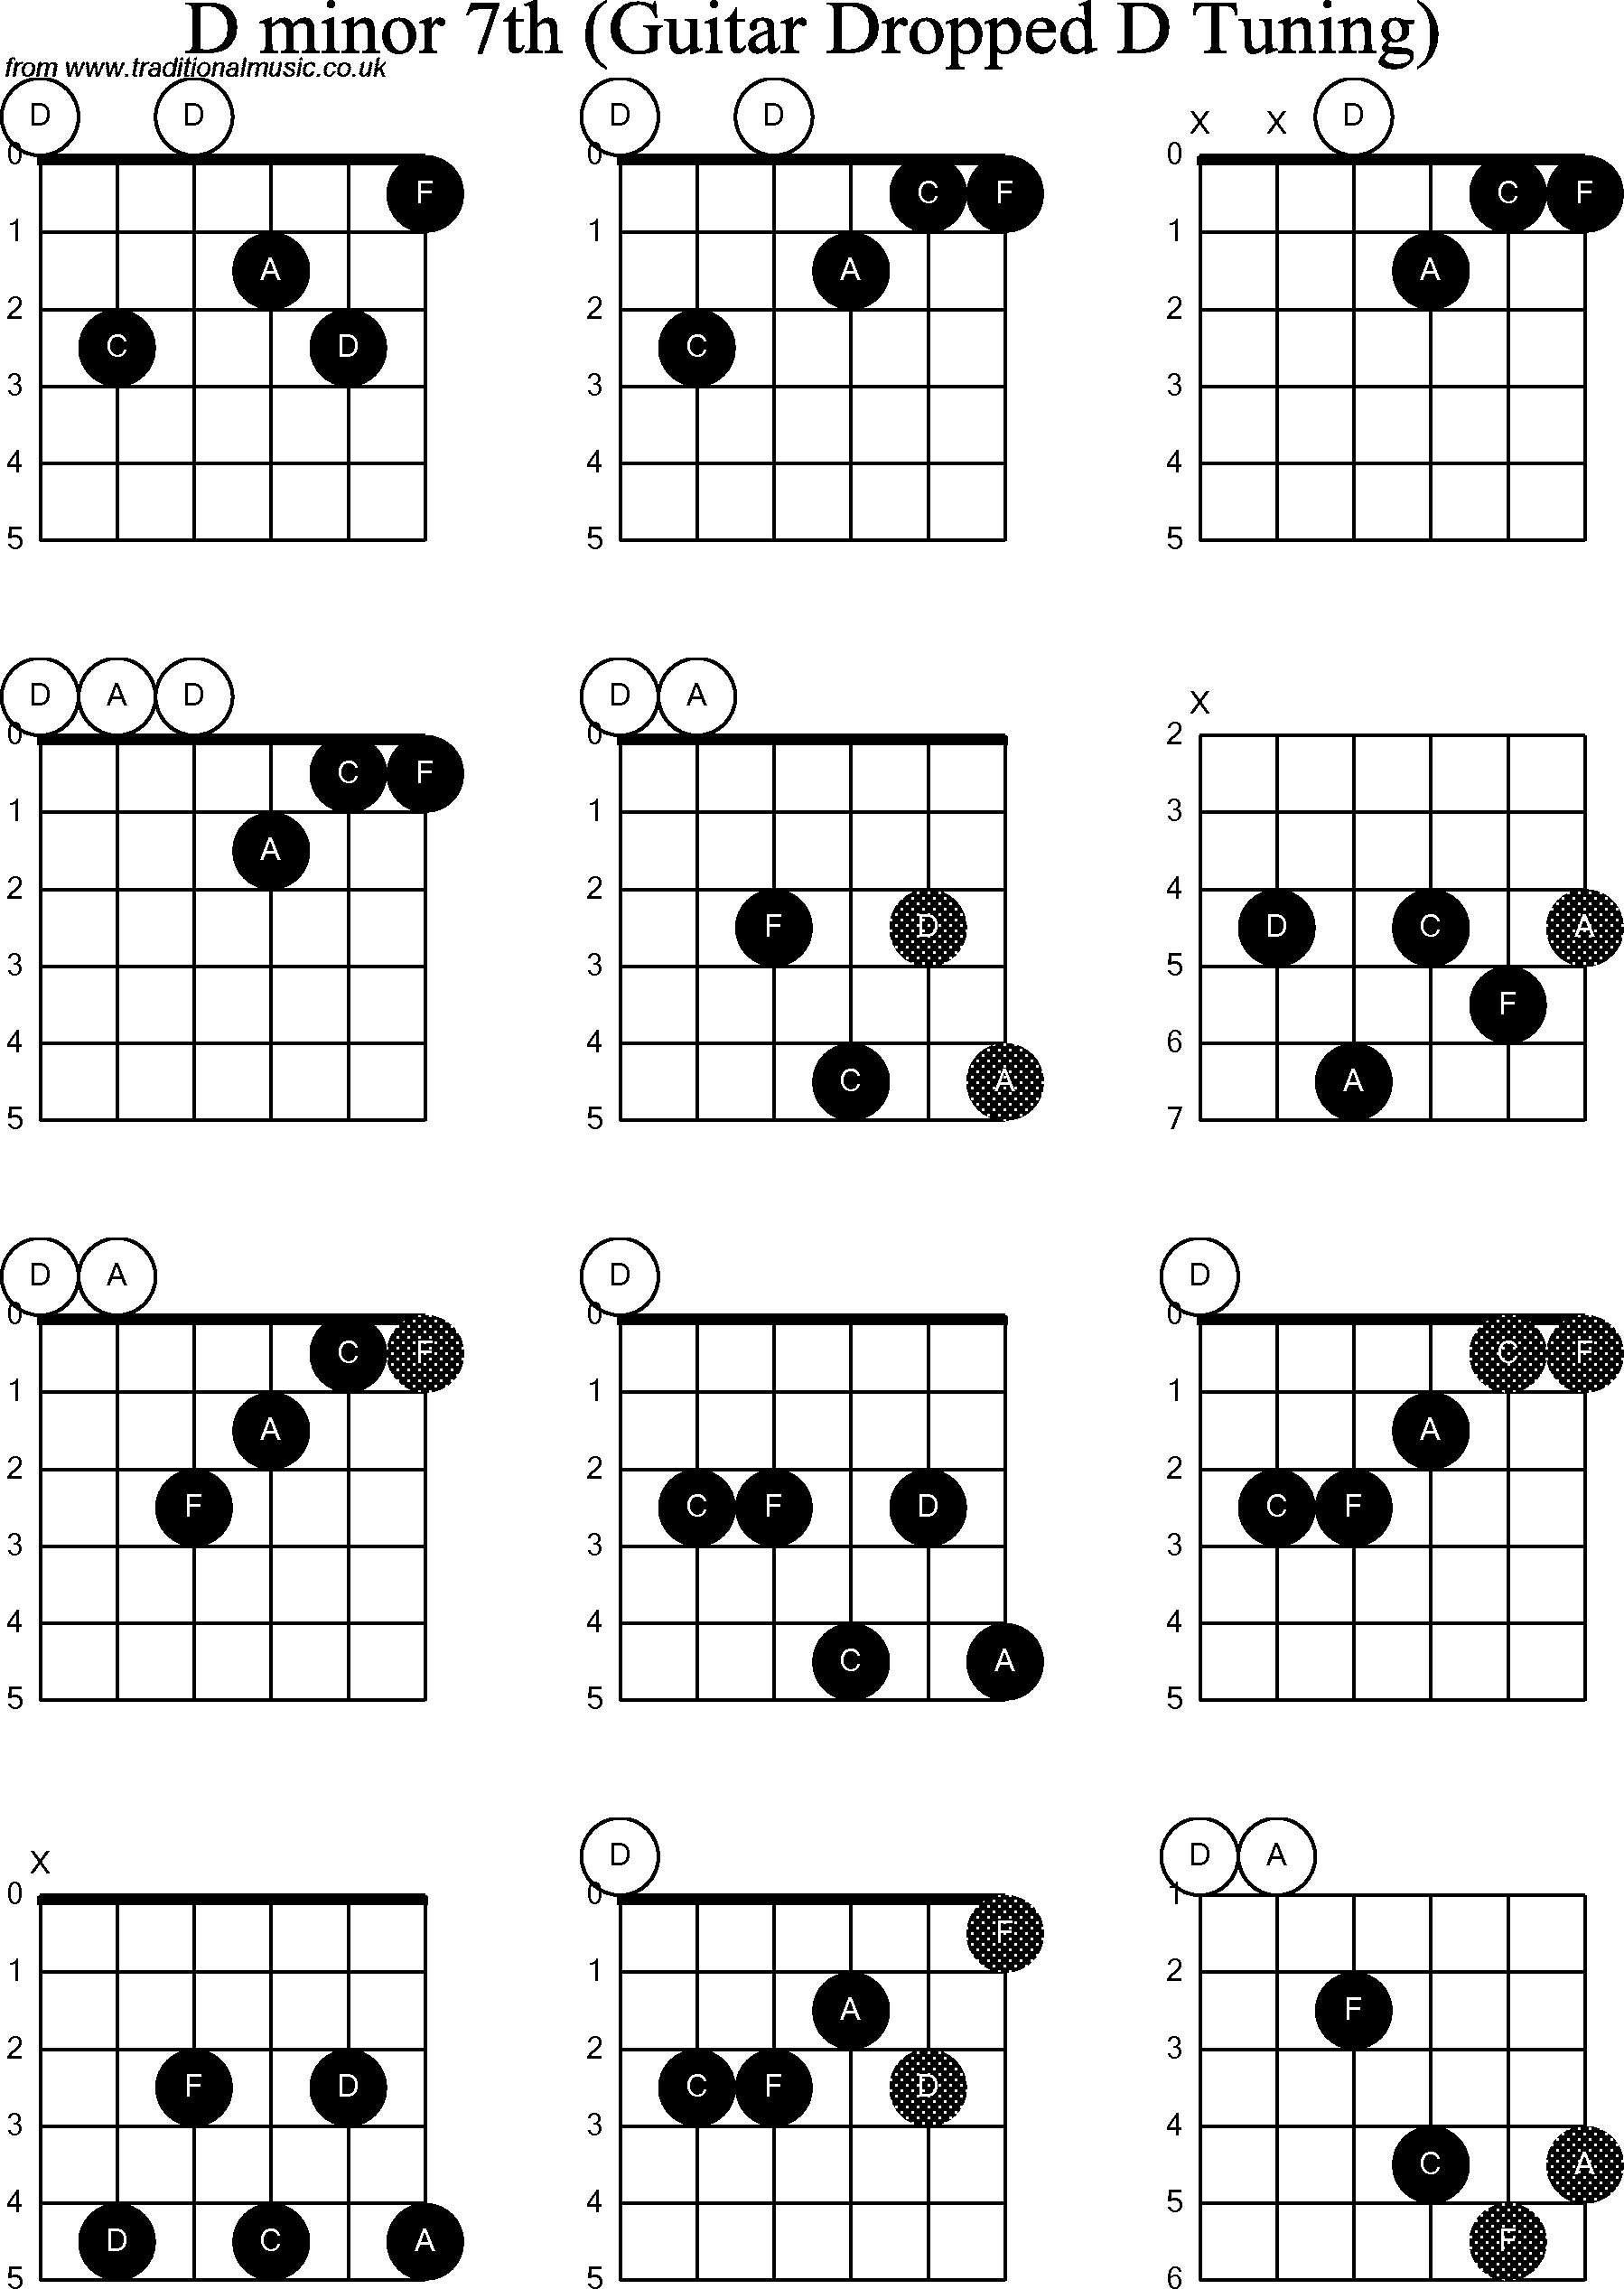 chord diagrams for dropped d guitar dadgbe   d minor7th